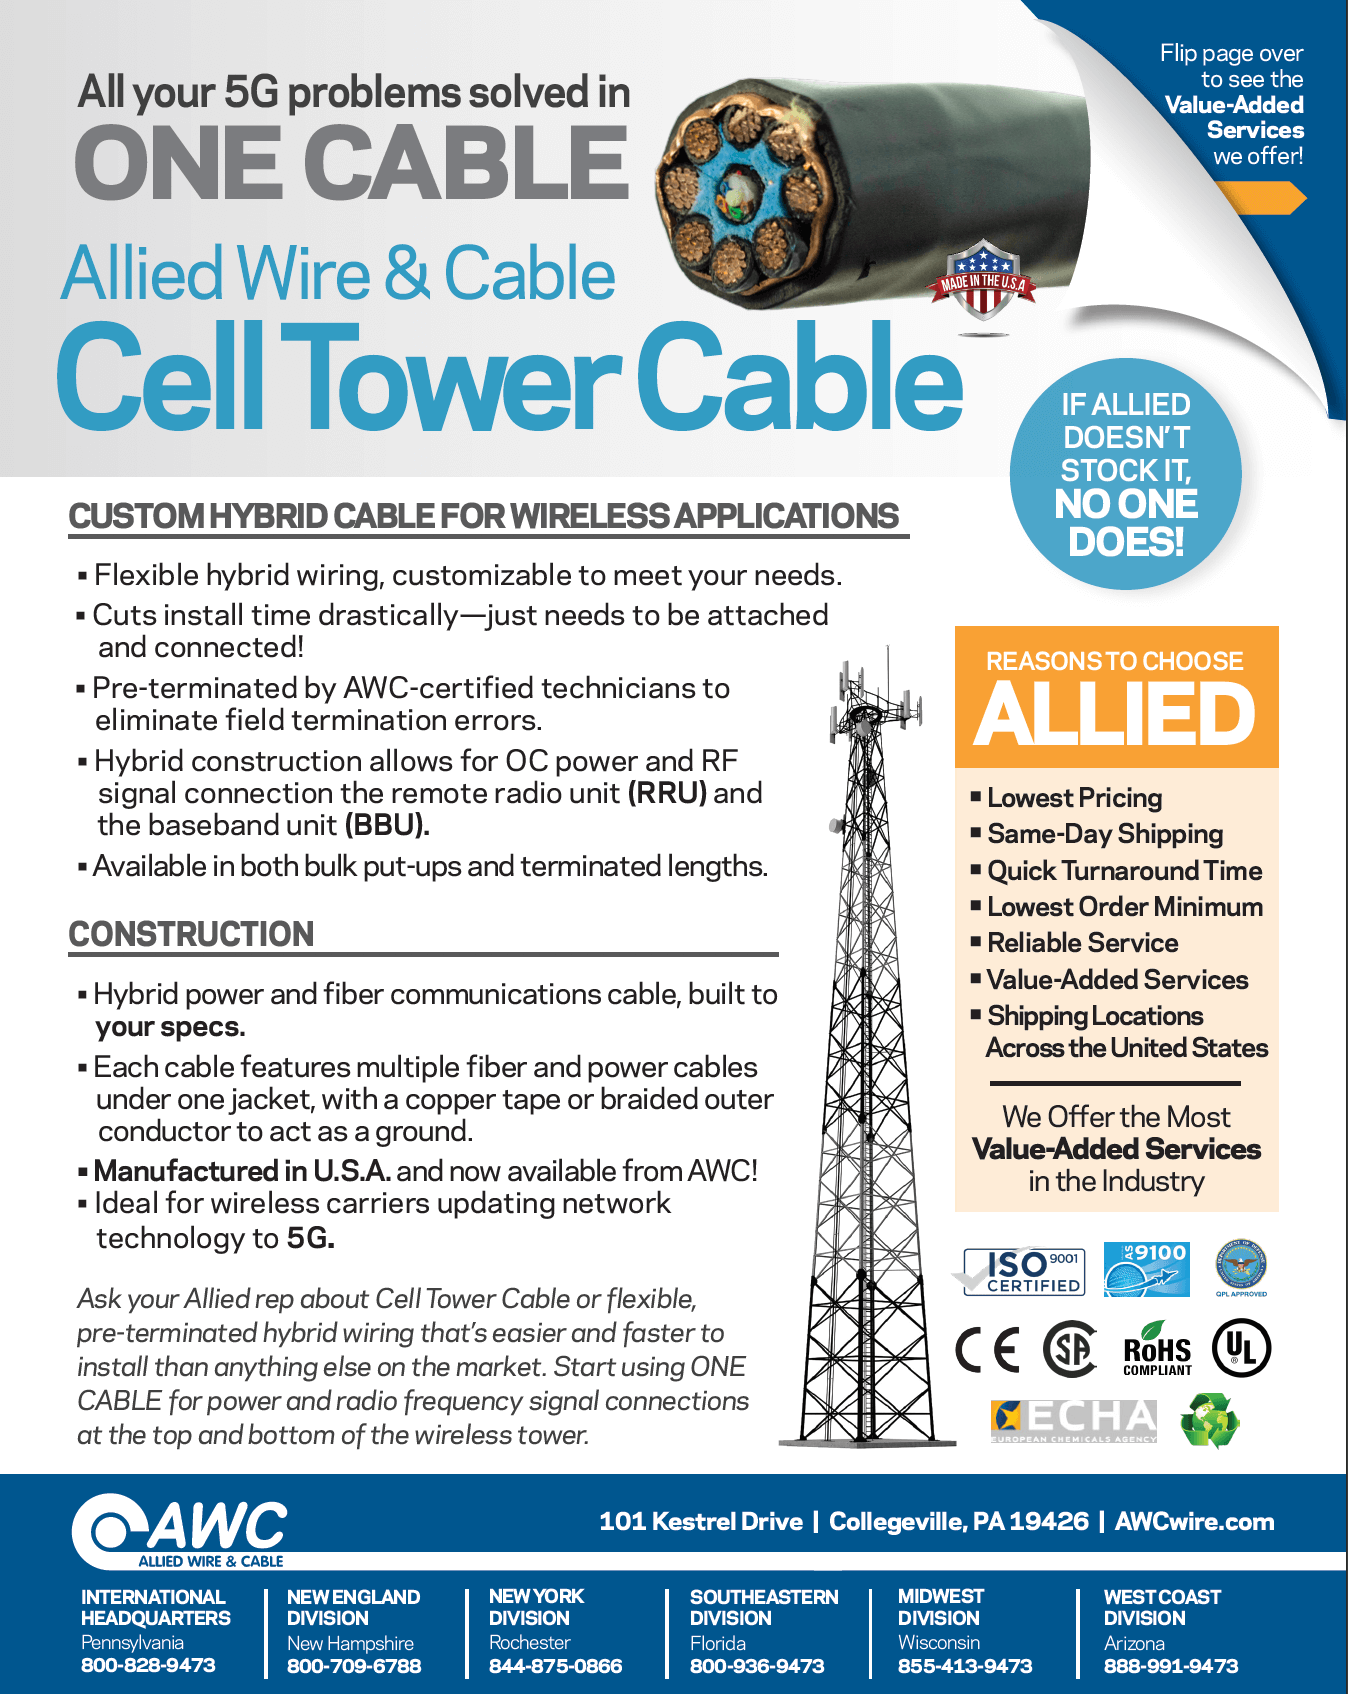 Cell Tower Cable Line Card from Allied Wire & Cable